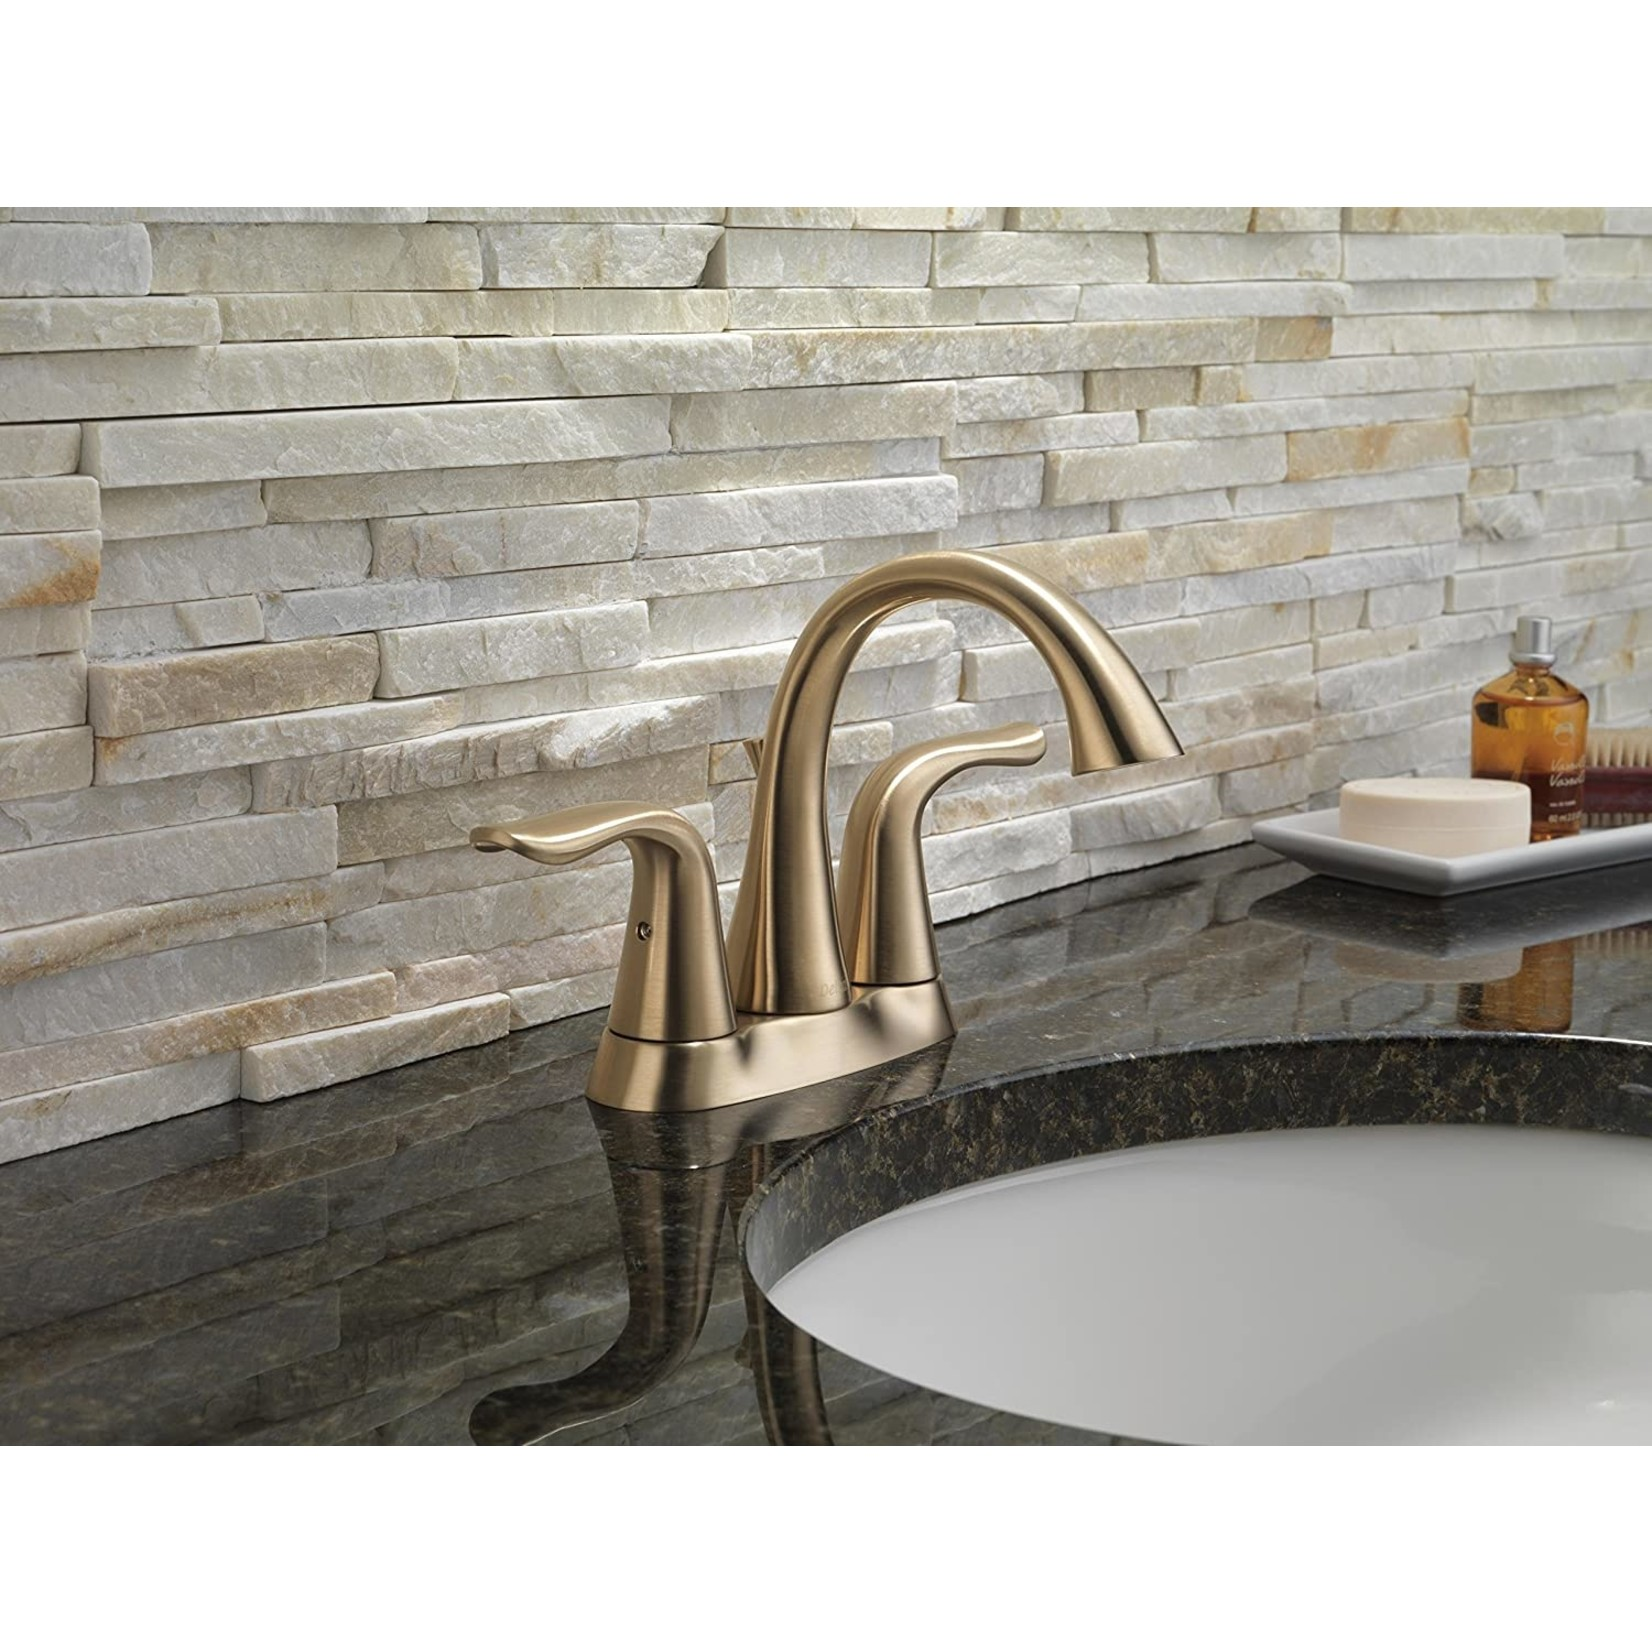 *Lahara Centerset Bathroom Faucet with Drain Assembly and Diamond Seal Technology - Champagne Bronze